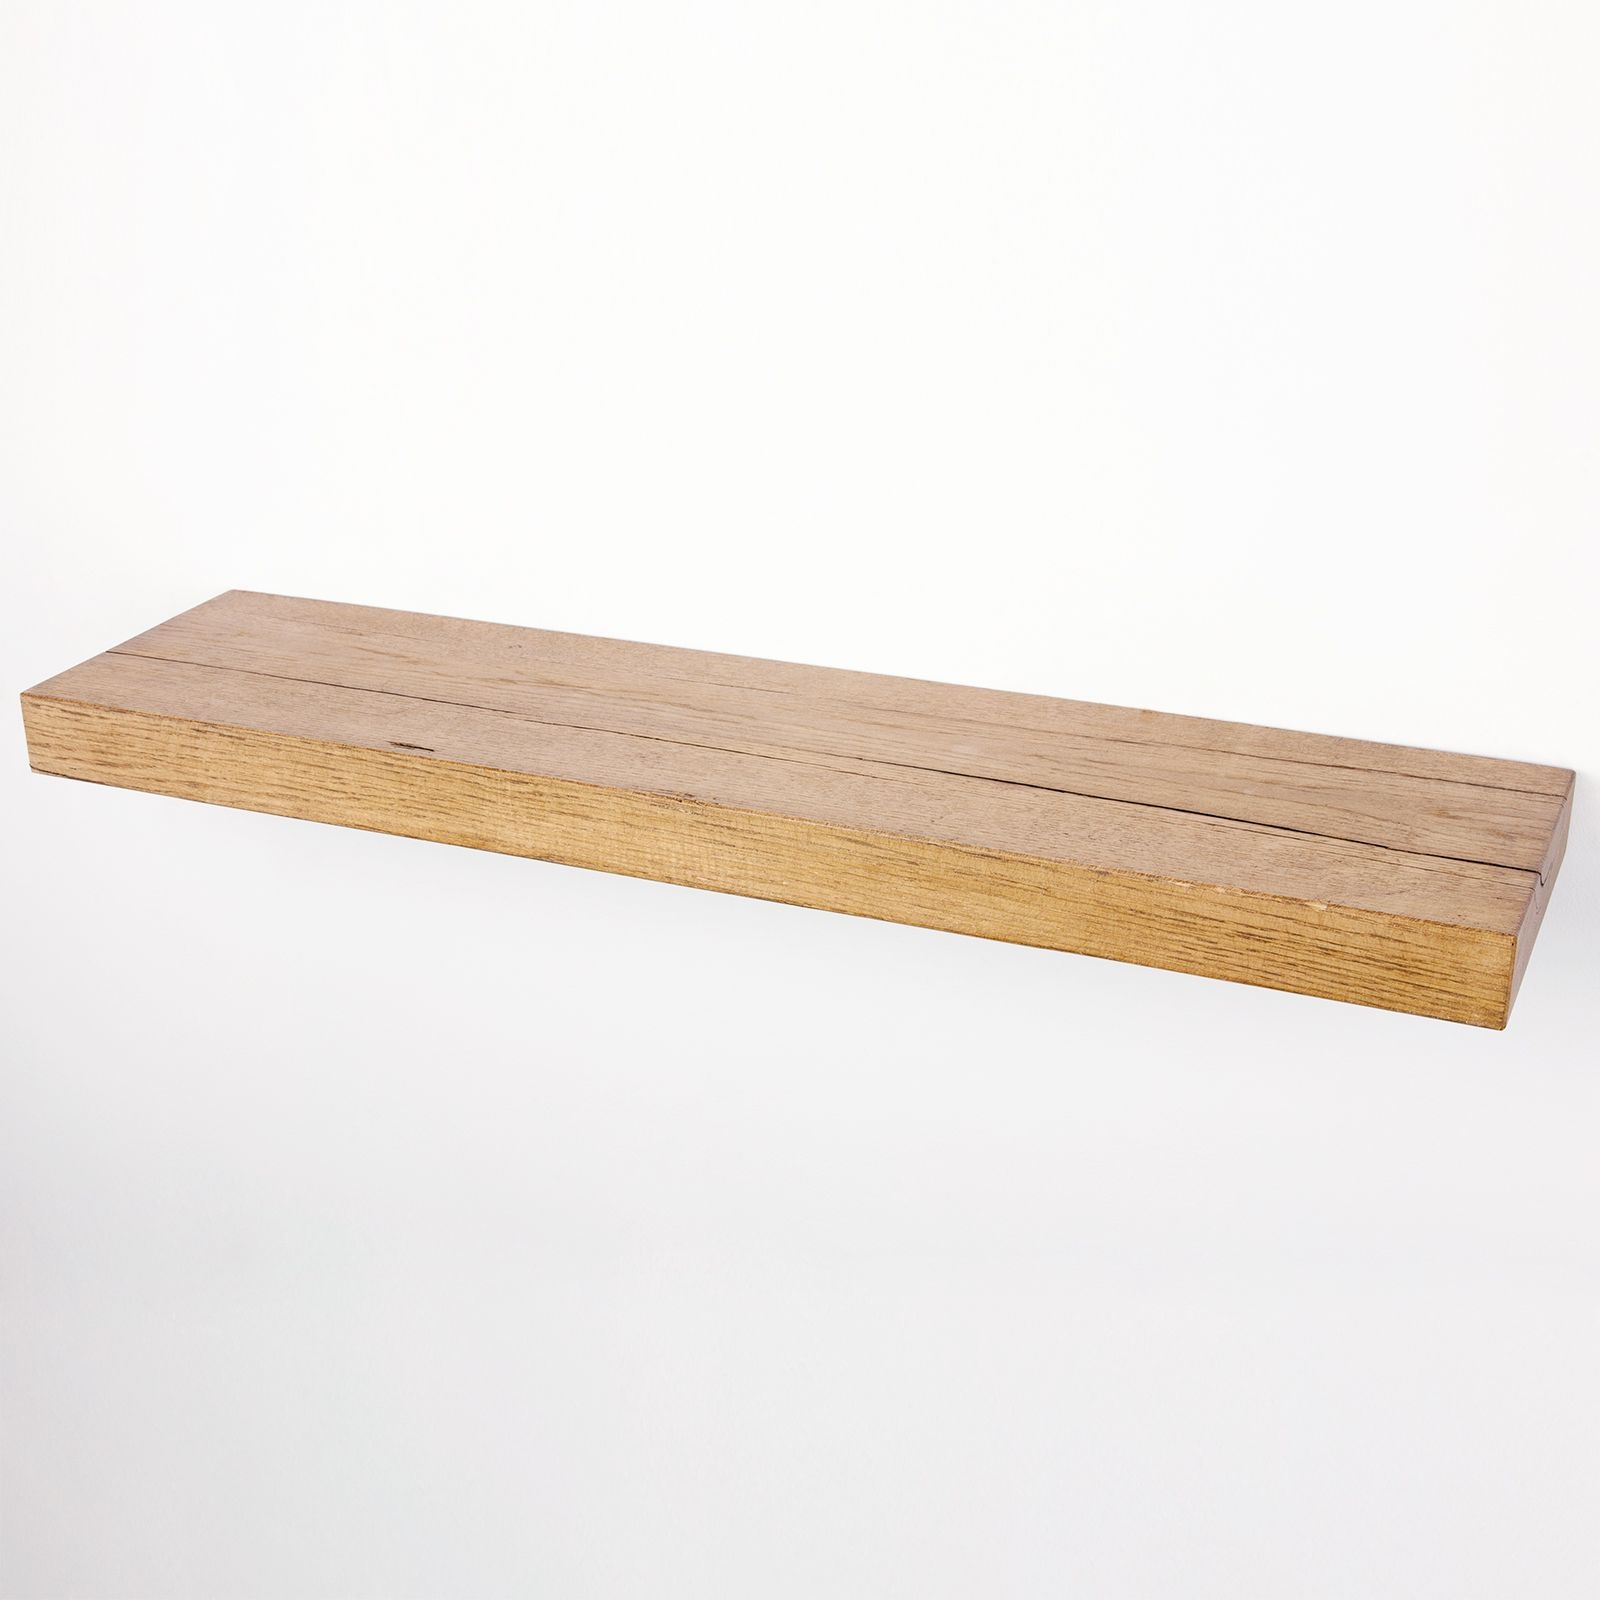 Floating Shelf 8×2 Solid Oak Funky Chunky Furniture Regarding Floating Shelf 40cm (Image 3 of 15)